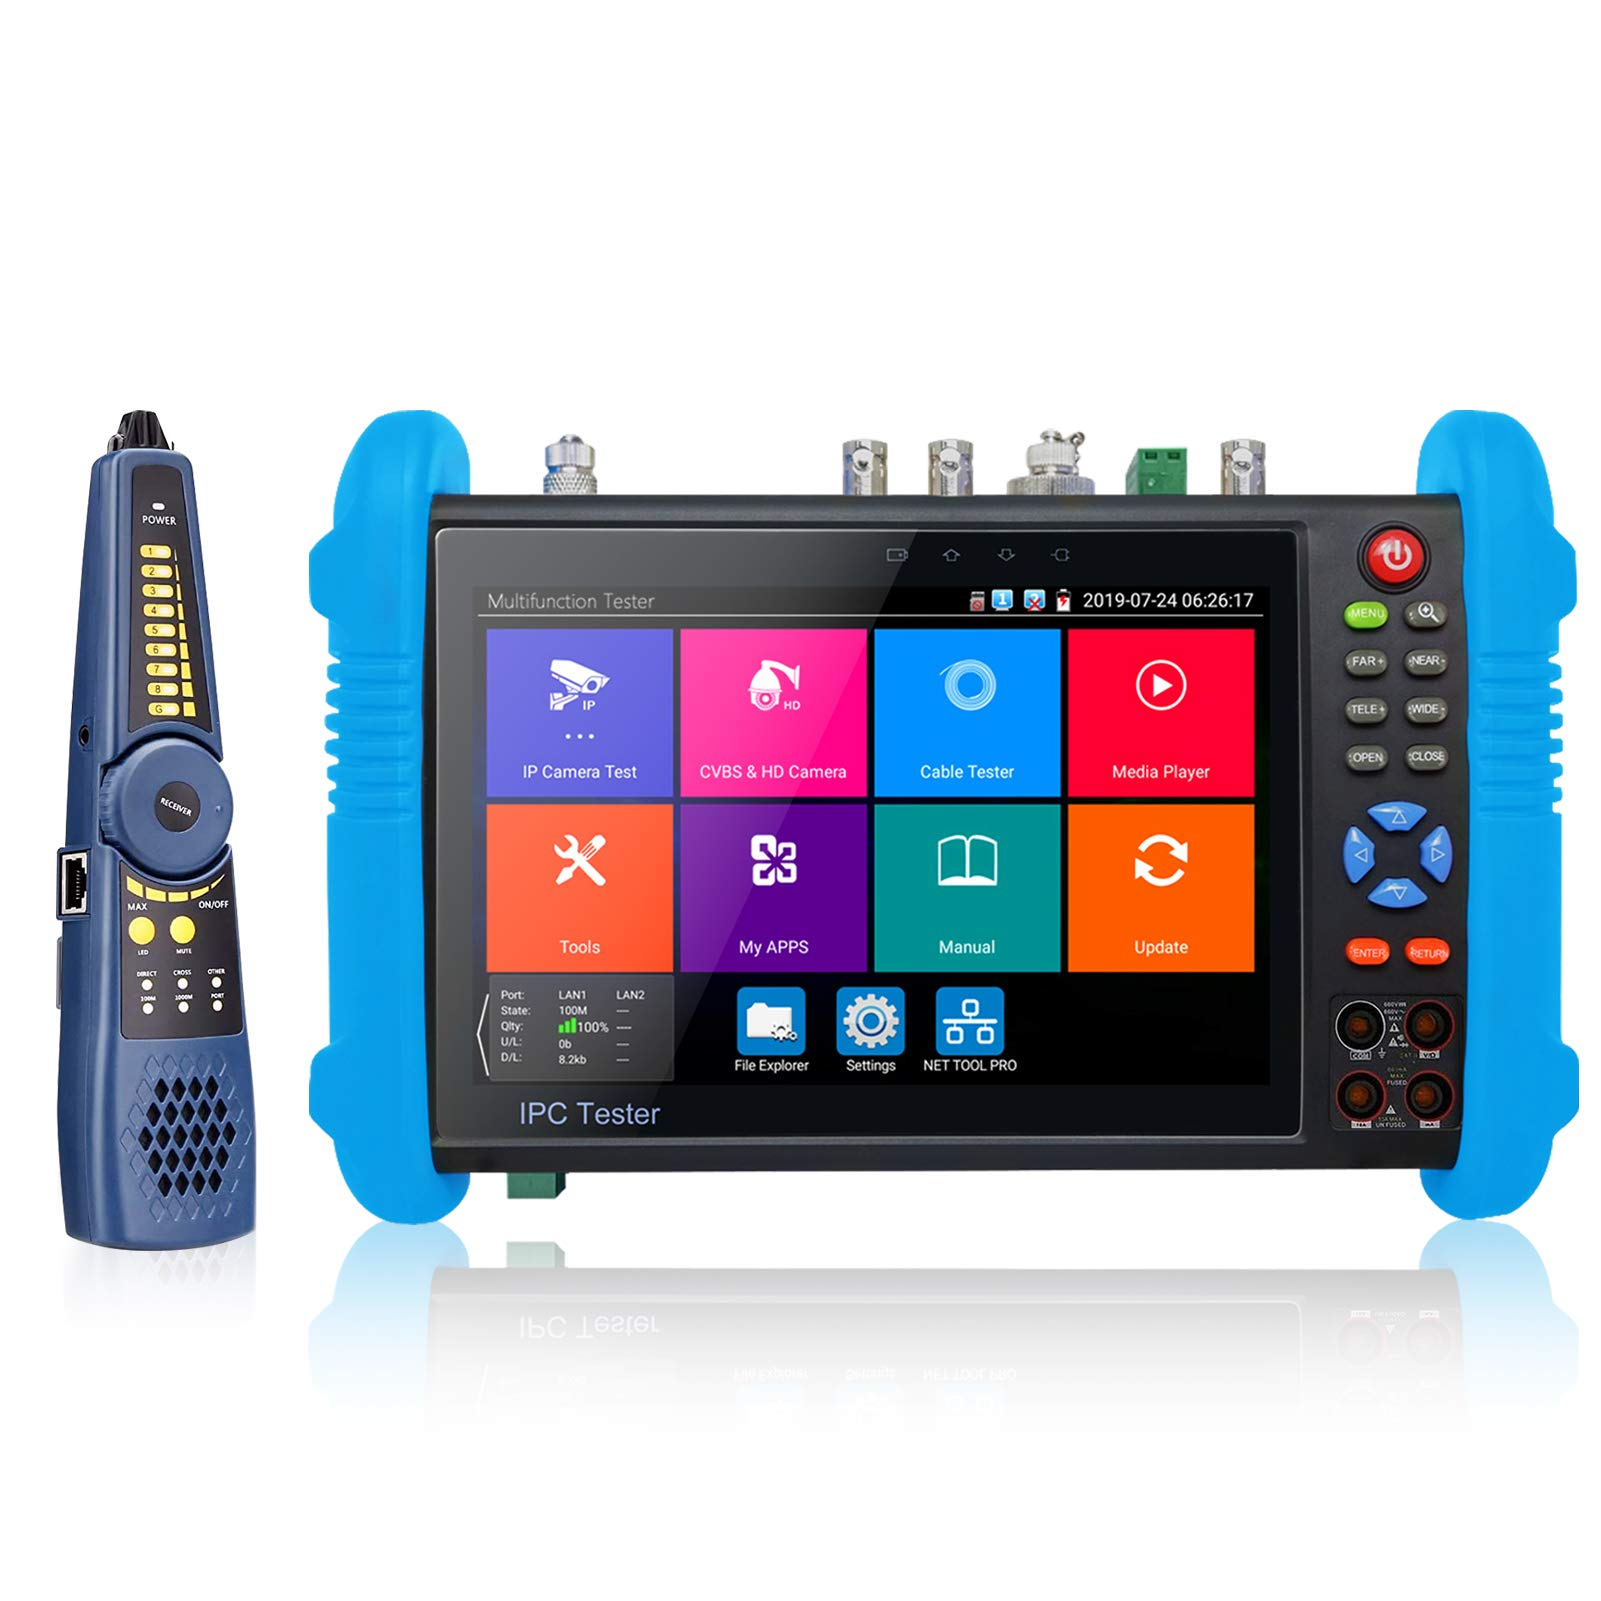 Rsrteng IPC-9800MOVTADHS Plus+ Full Features CCTV Camera Tester 7-inch IPS Touch Screen Monitor CCTV Tester with HD-TVI HD-CVI AHD SDI IP Camera Support DMM OPM VFL TDR Features POE WIFI 4K H.265 HDMI